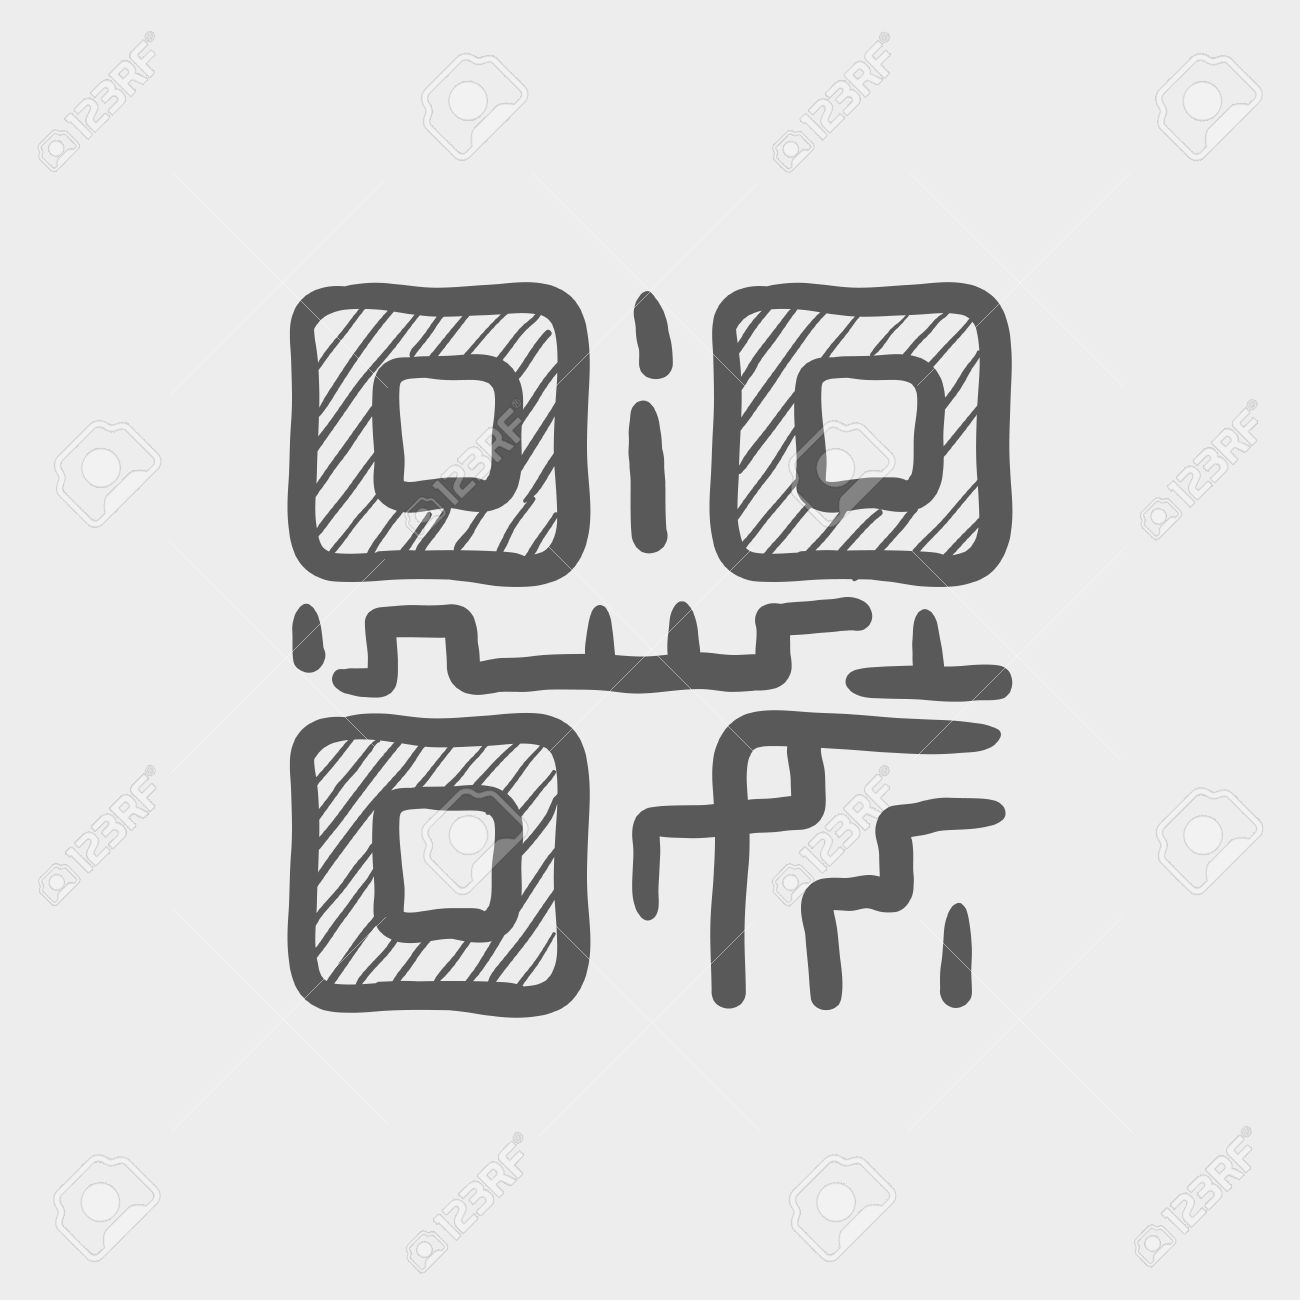 Qr Code Sketch Icon For Web And Mobile Hand Drawn Vector Dark